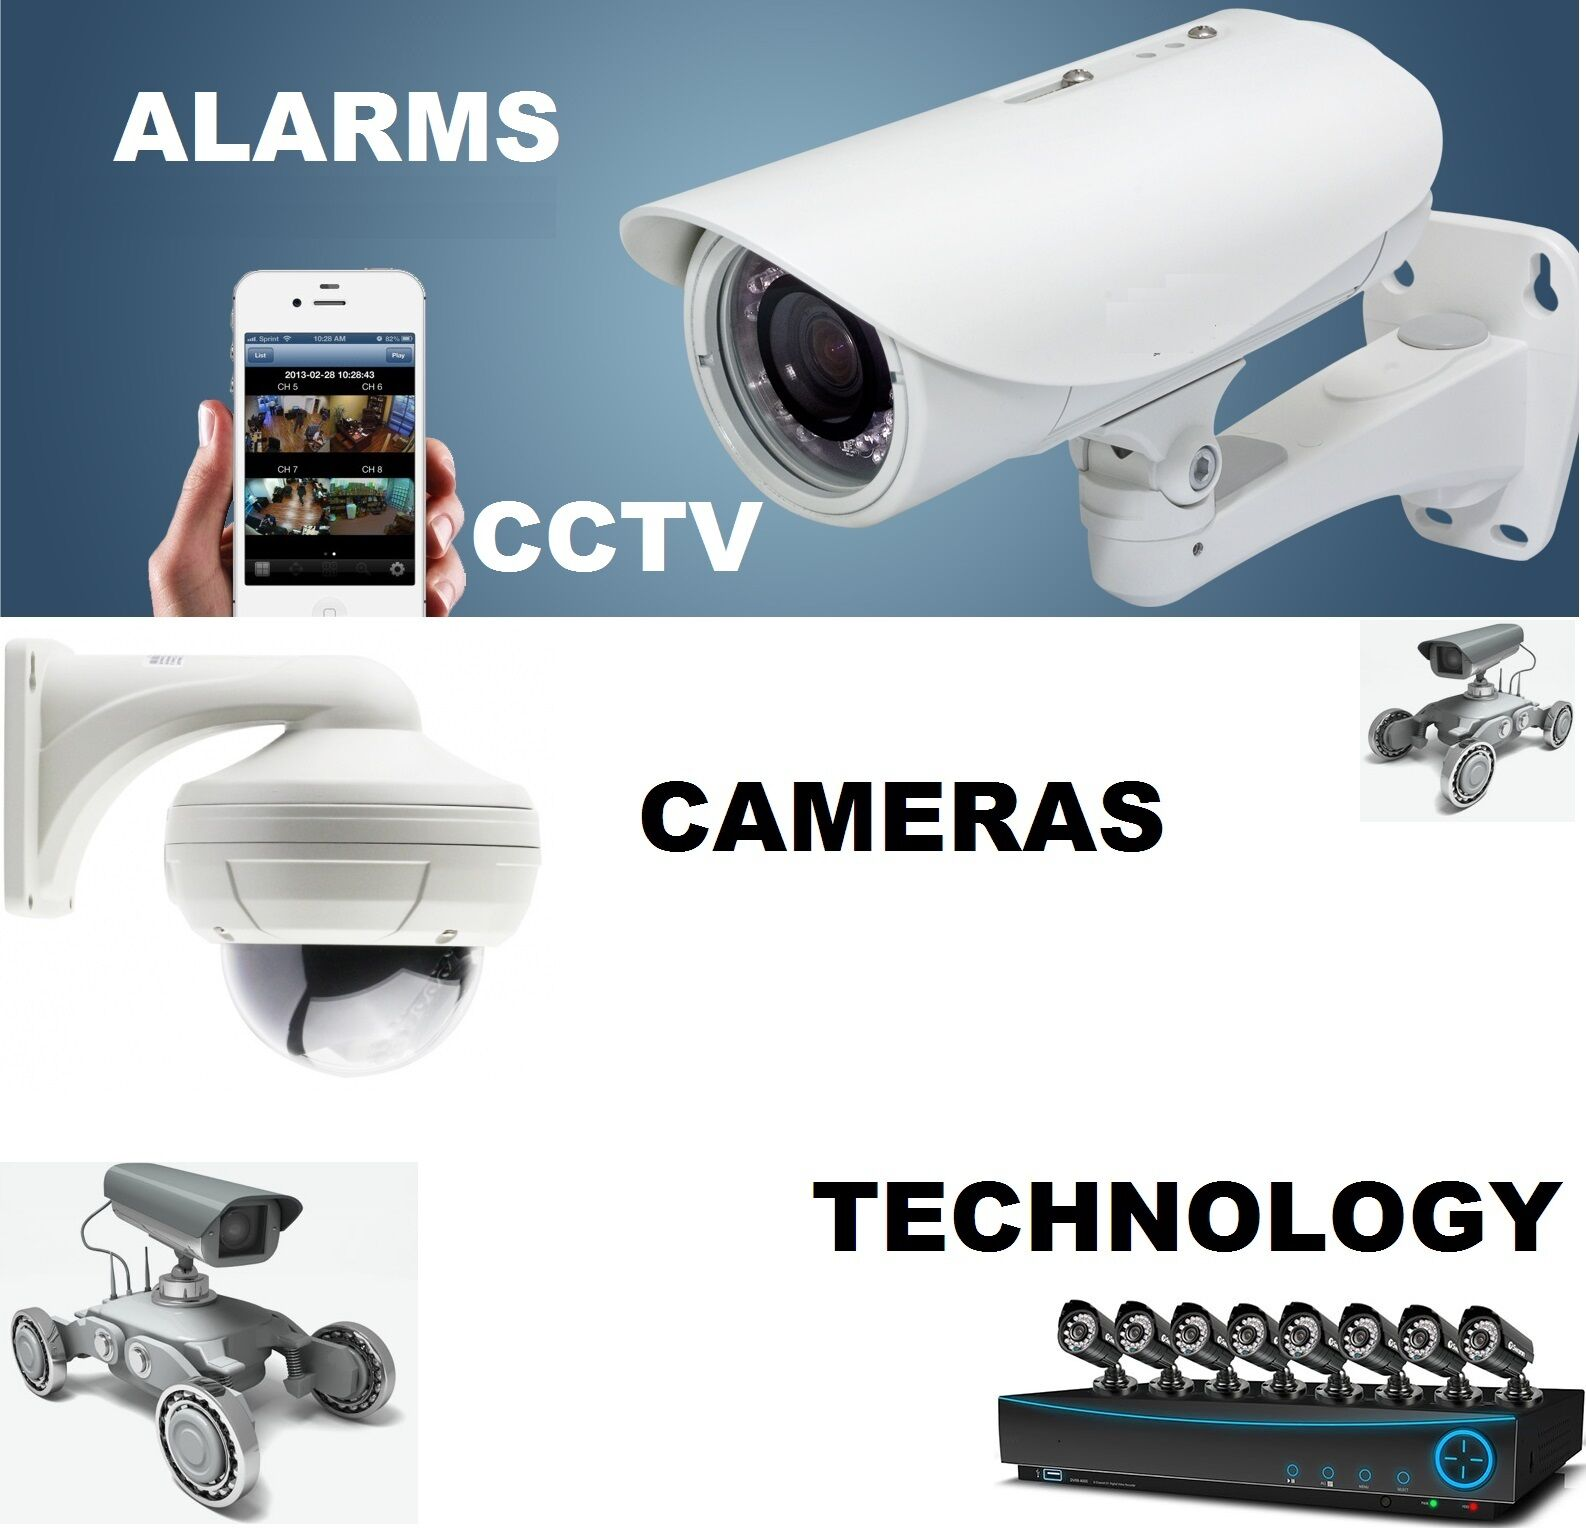 Alarms CCTV Cameras Technology